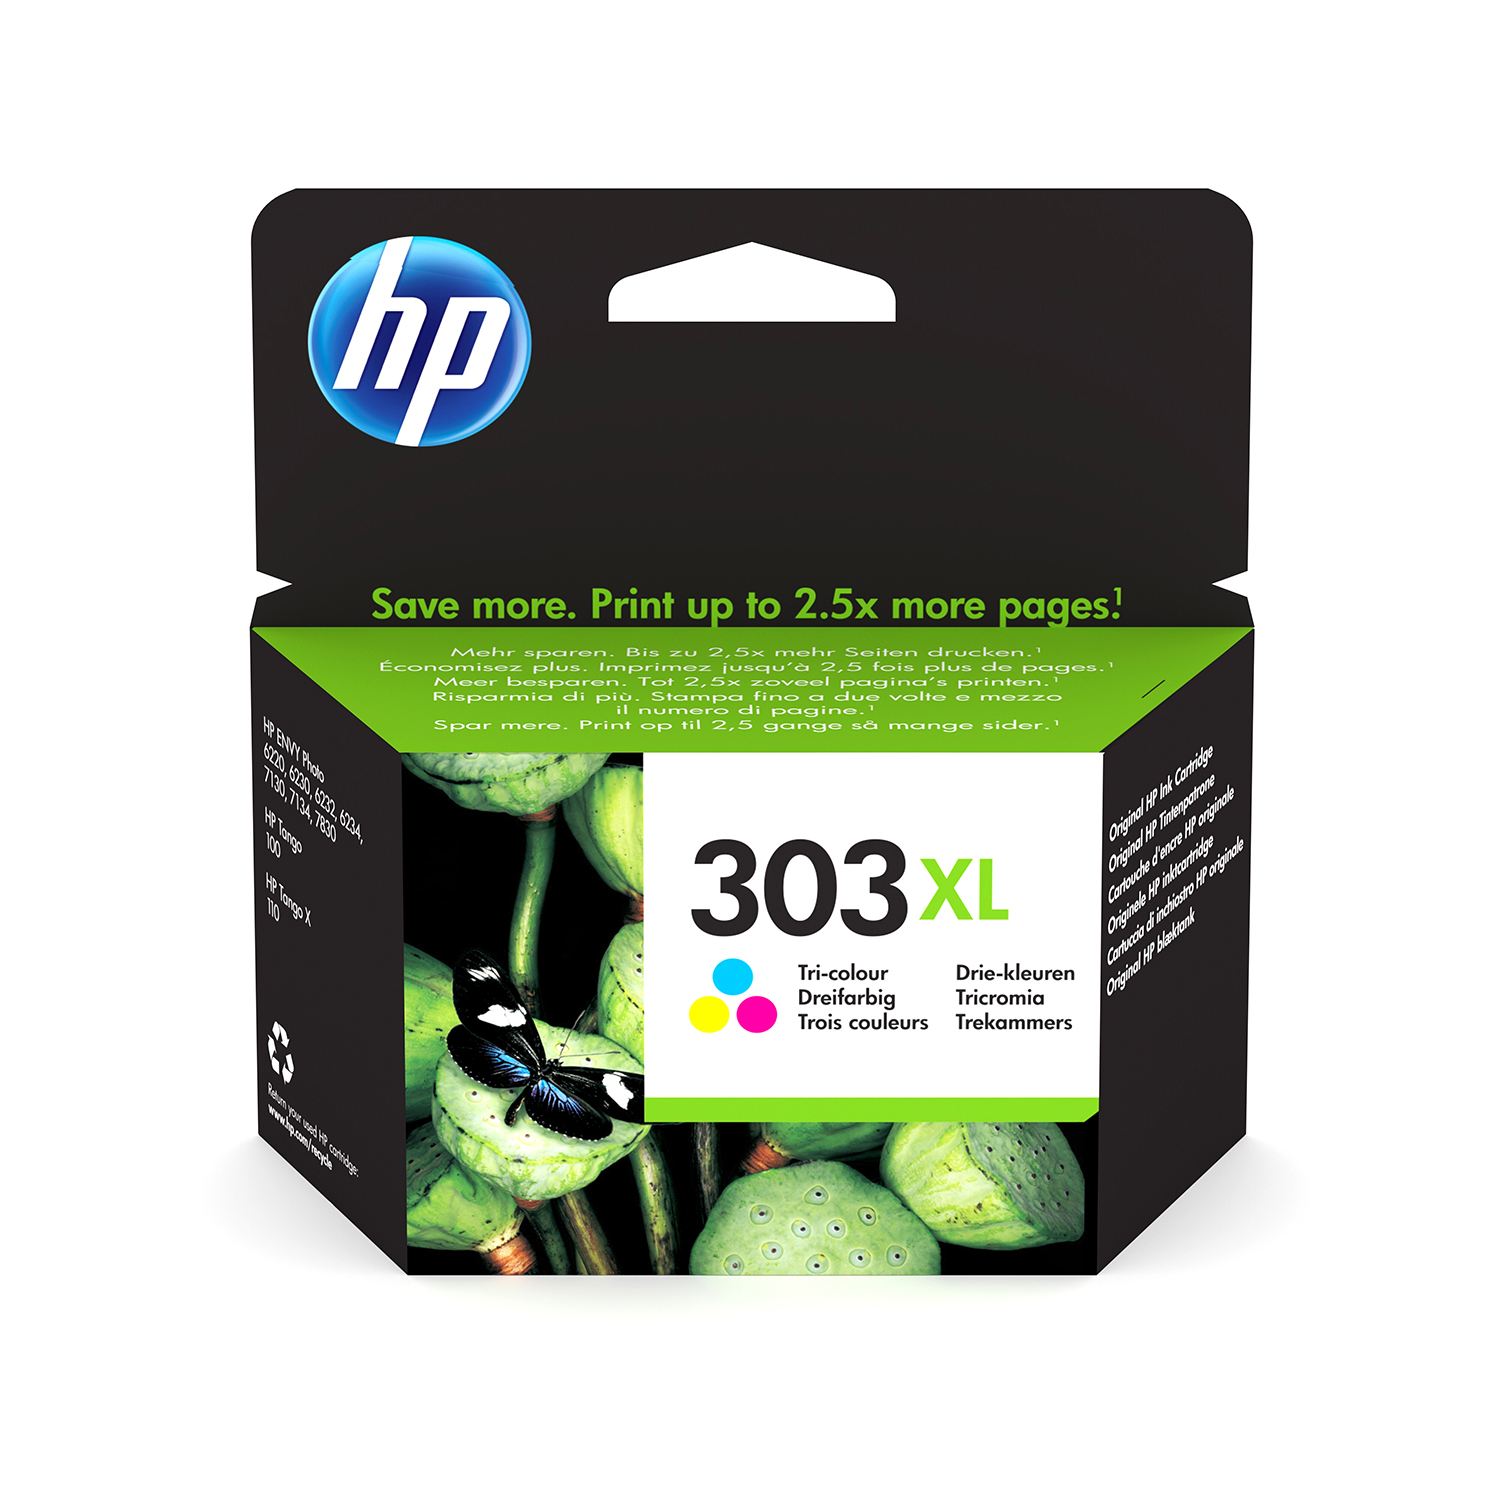 Hewlett Packard 303XL Inkjet Cartridge High Yield Page Life 415pp 10ml Tri-Colour Ref T6N03AE